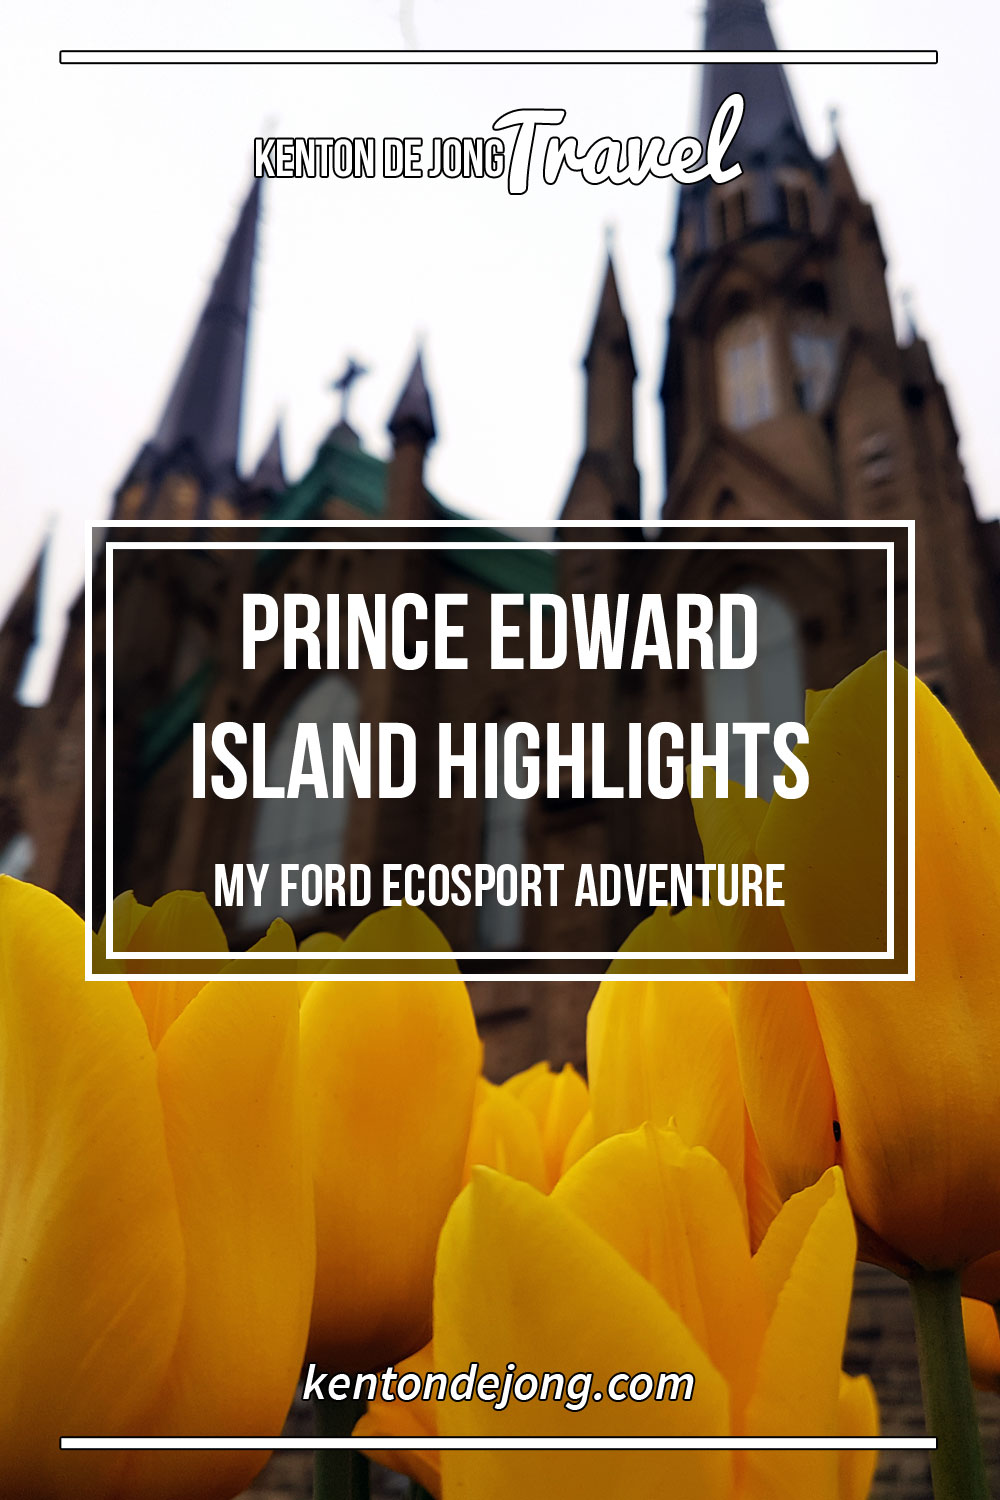 Prince Edward Island Highlights - My Ford EcoSport Adventure